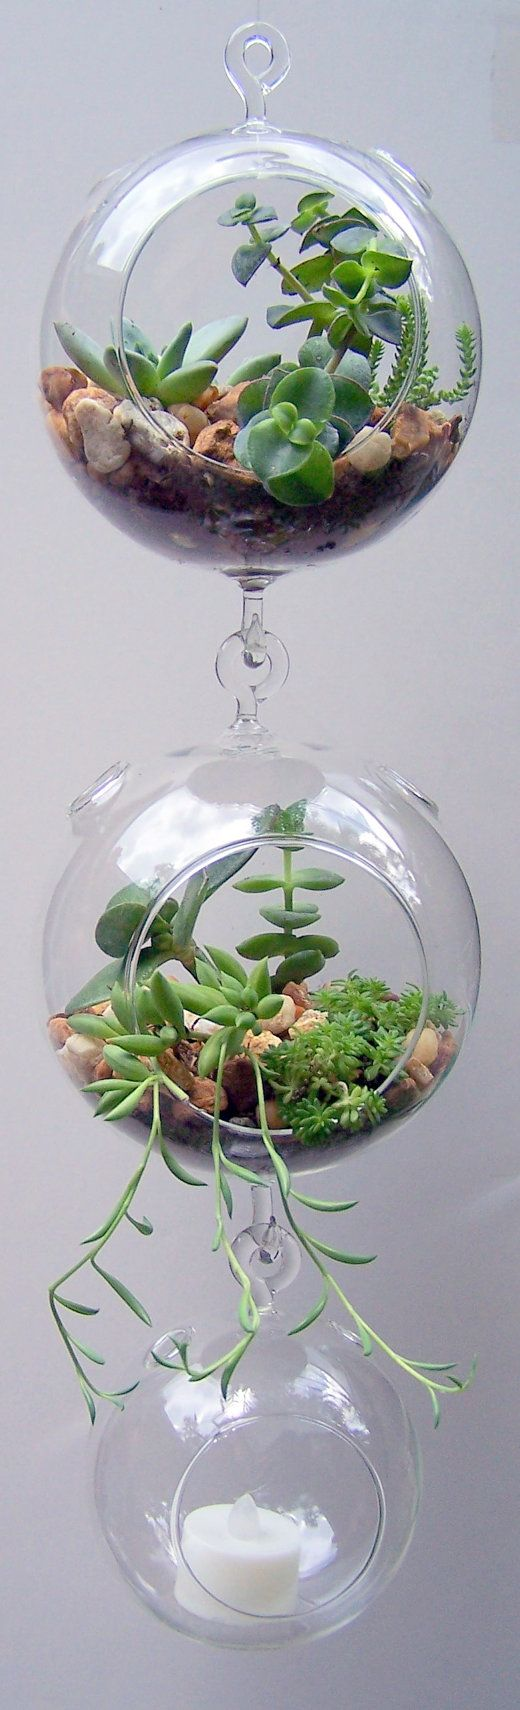 Terrarium Glass Hanging Double Hook Vertical Gardening DIY NO PLANTS B